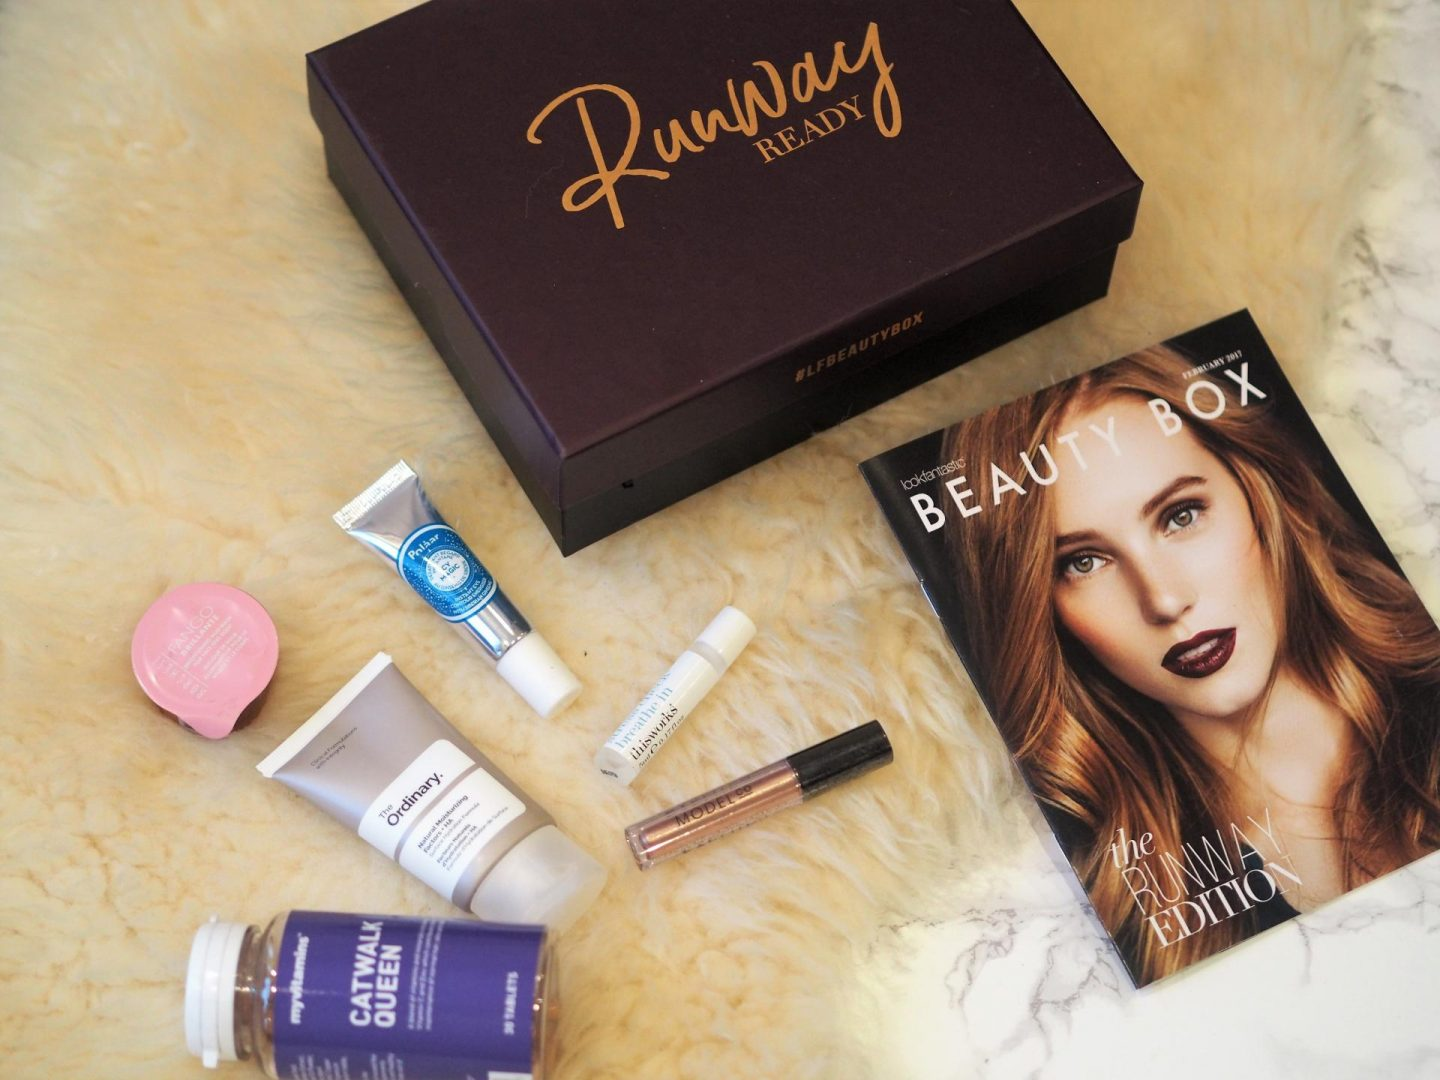 Lookfantastic Beauty Box - All Products